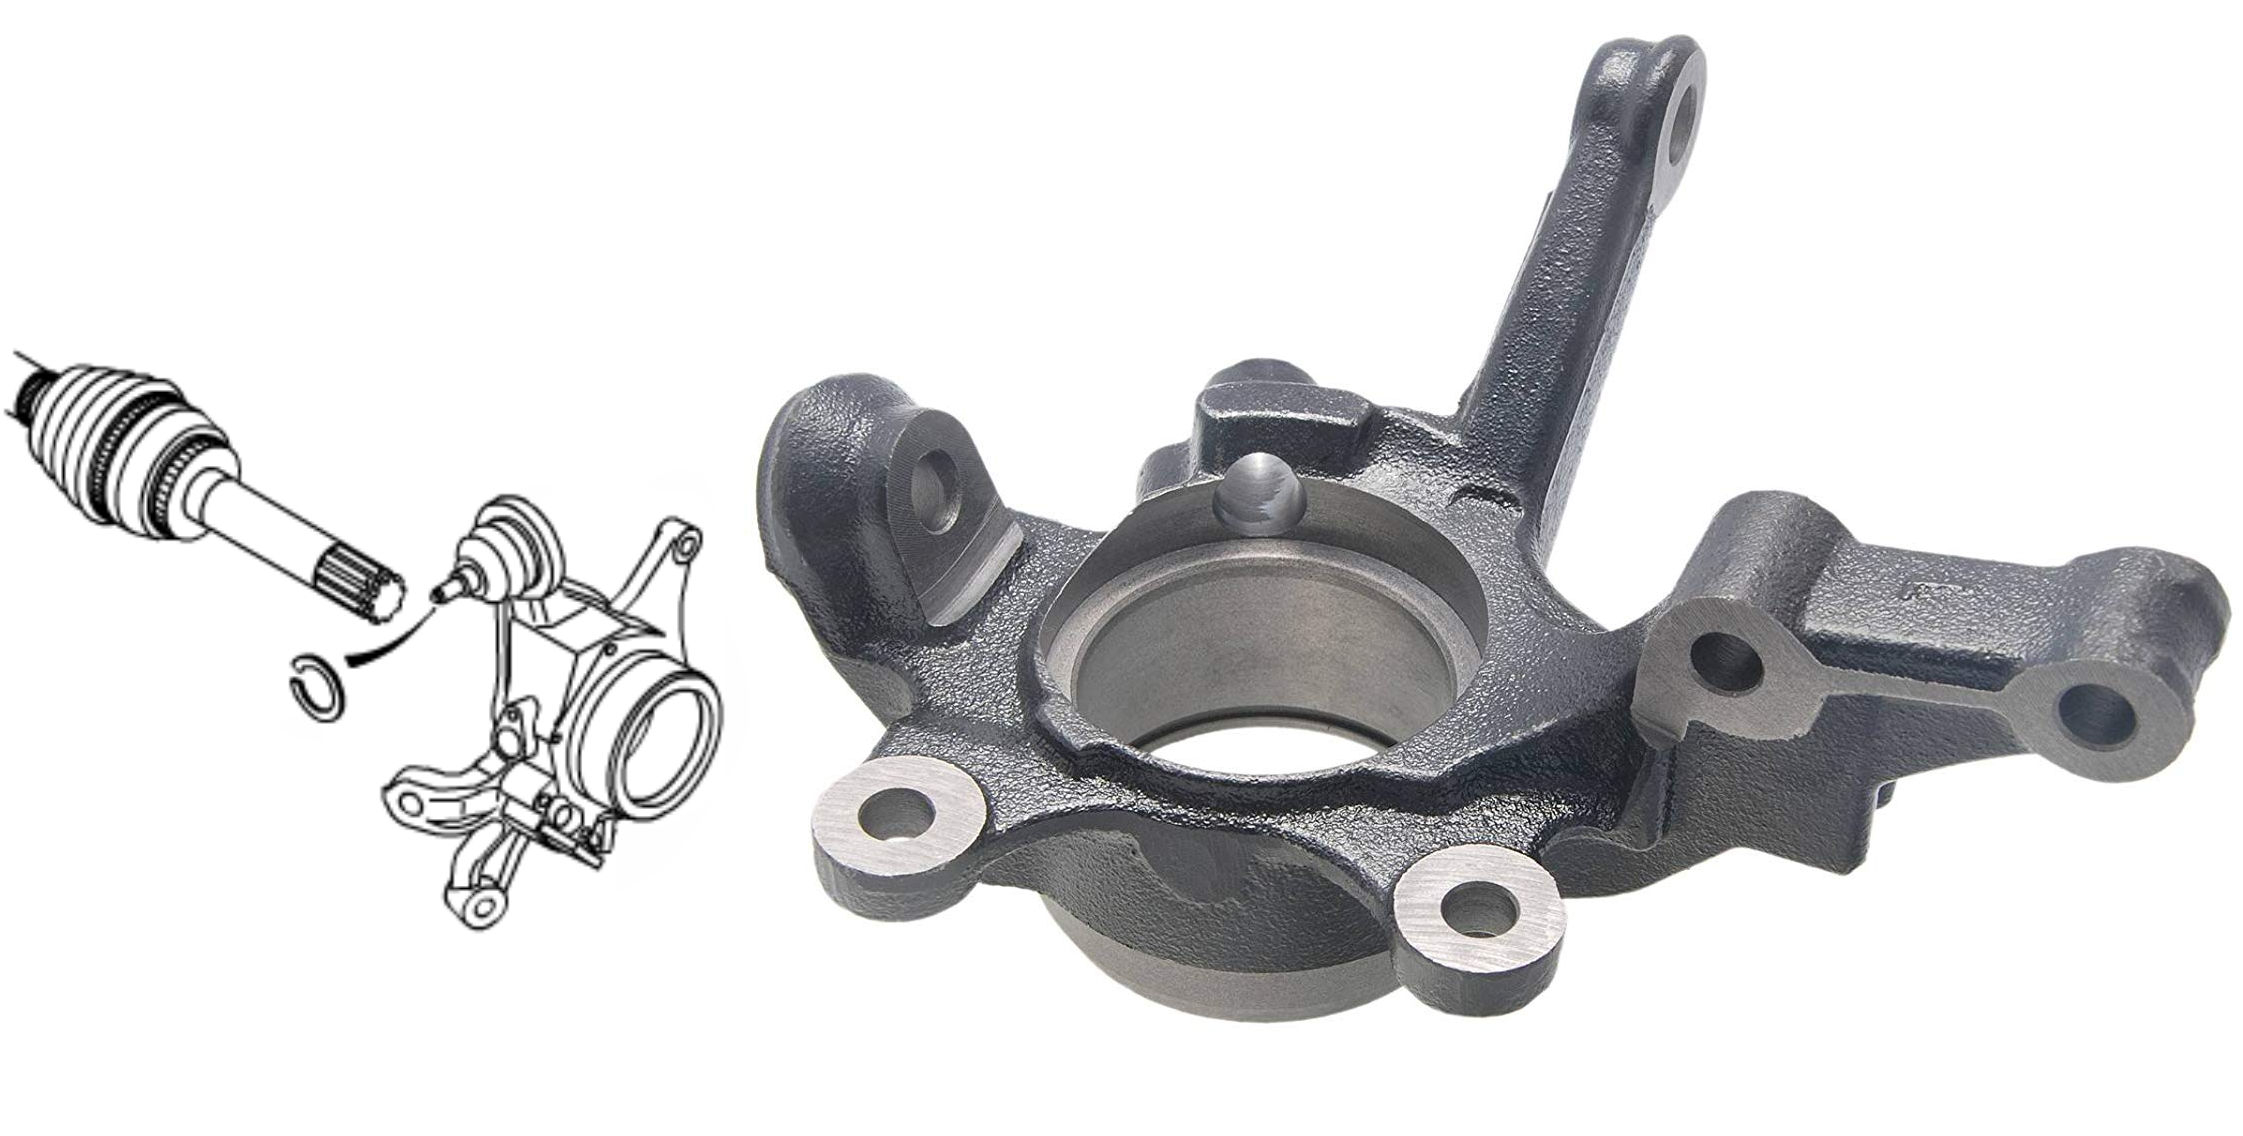 Steering Knuckle & Parts